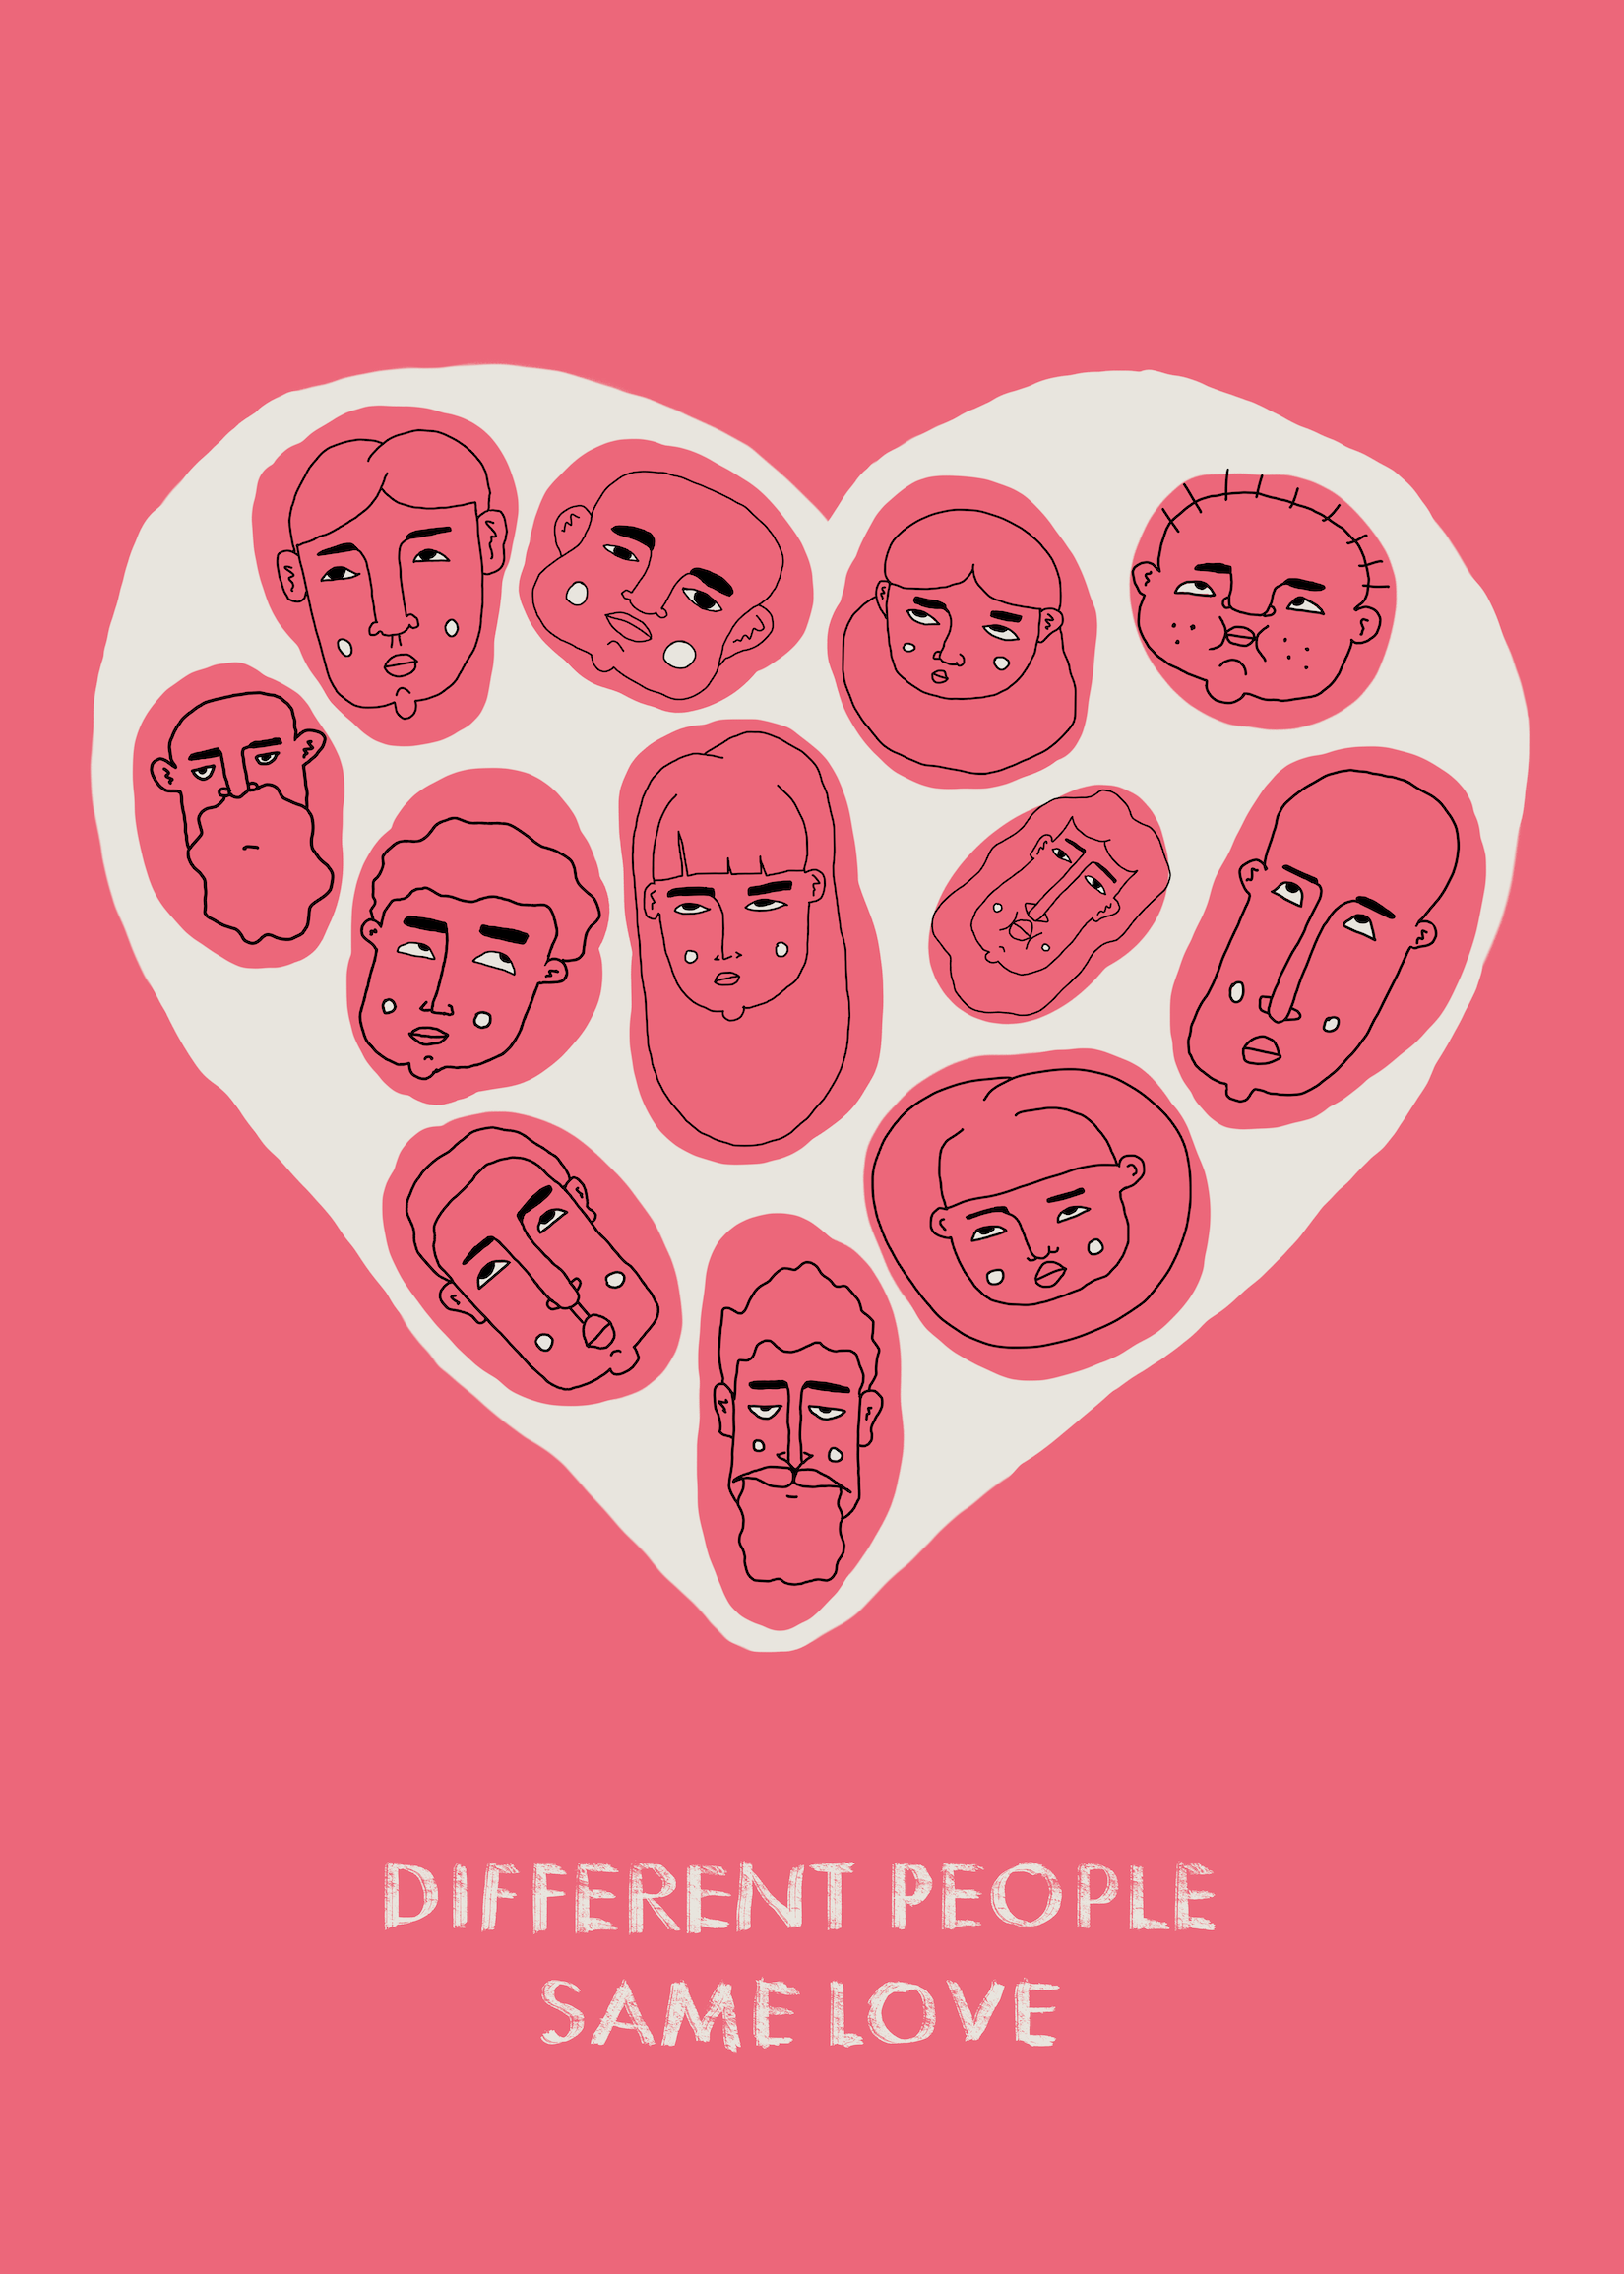 Different People Same Love (series 2/2) main image